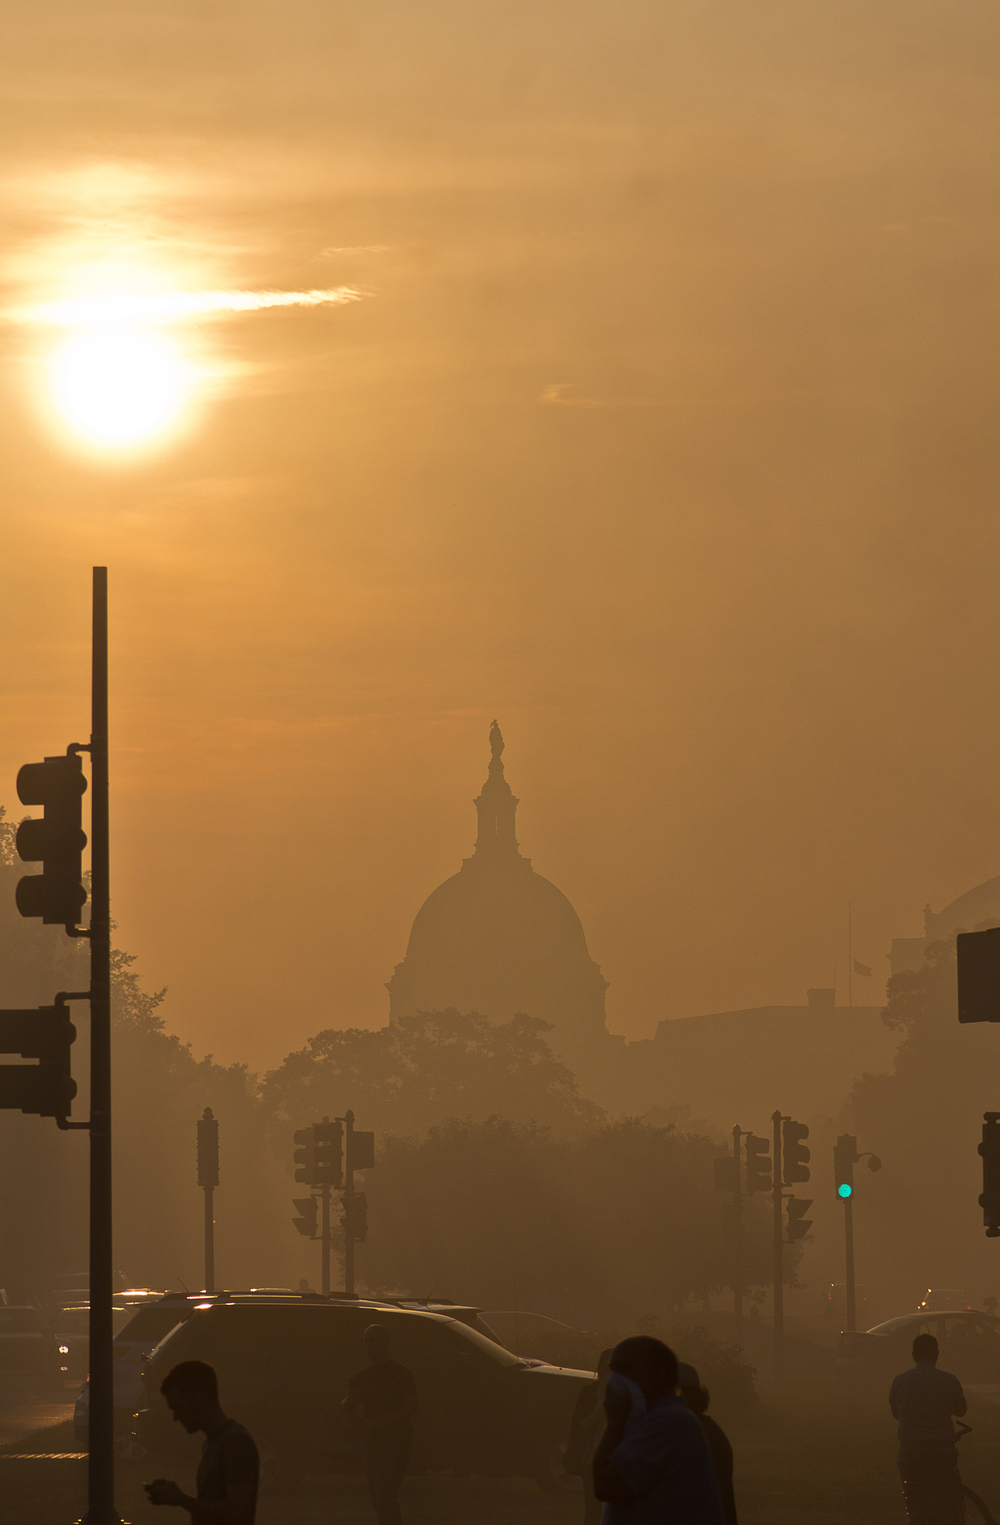 When  I first got off the metro at Eastern Market, the smoke was blowing right down Pennsylvania Avenue creating a smog like effect in between the Capitol and the fire.